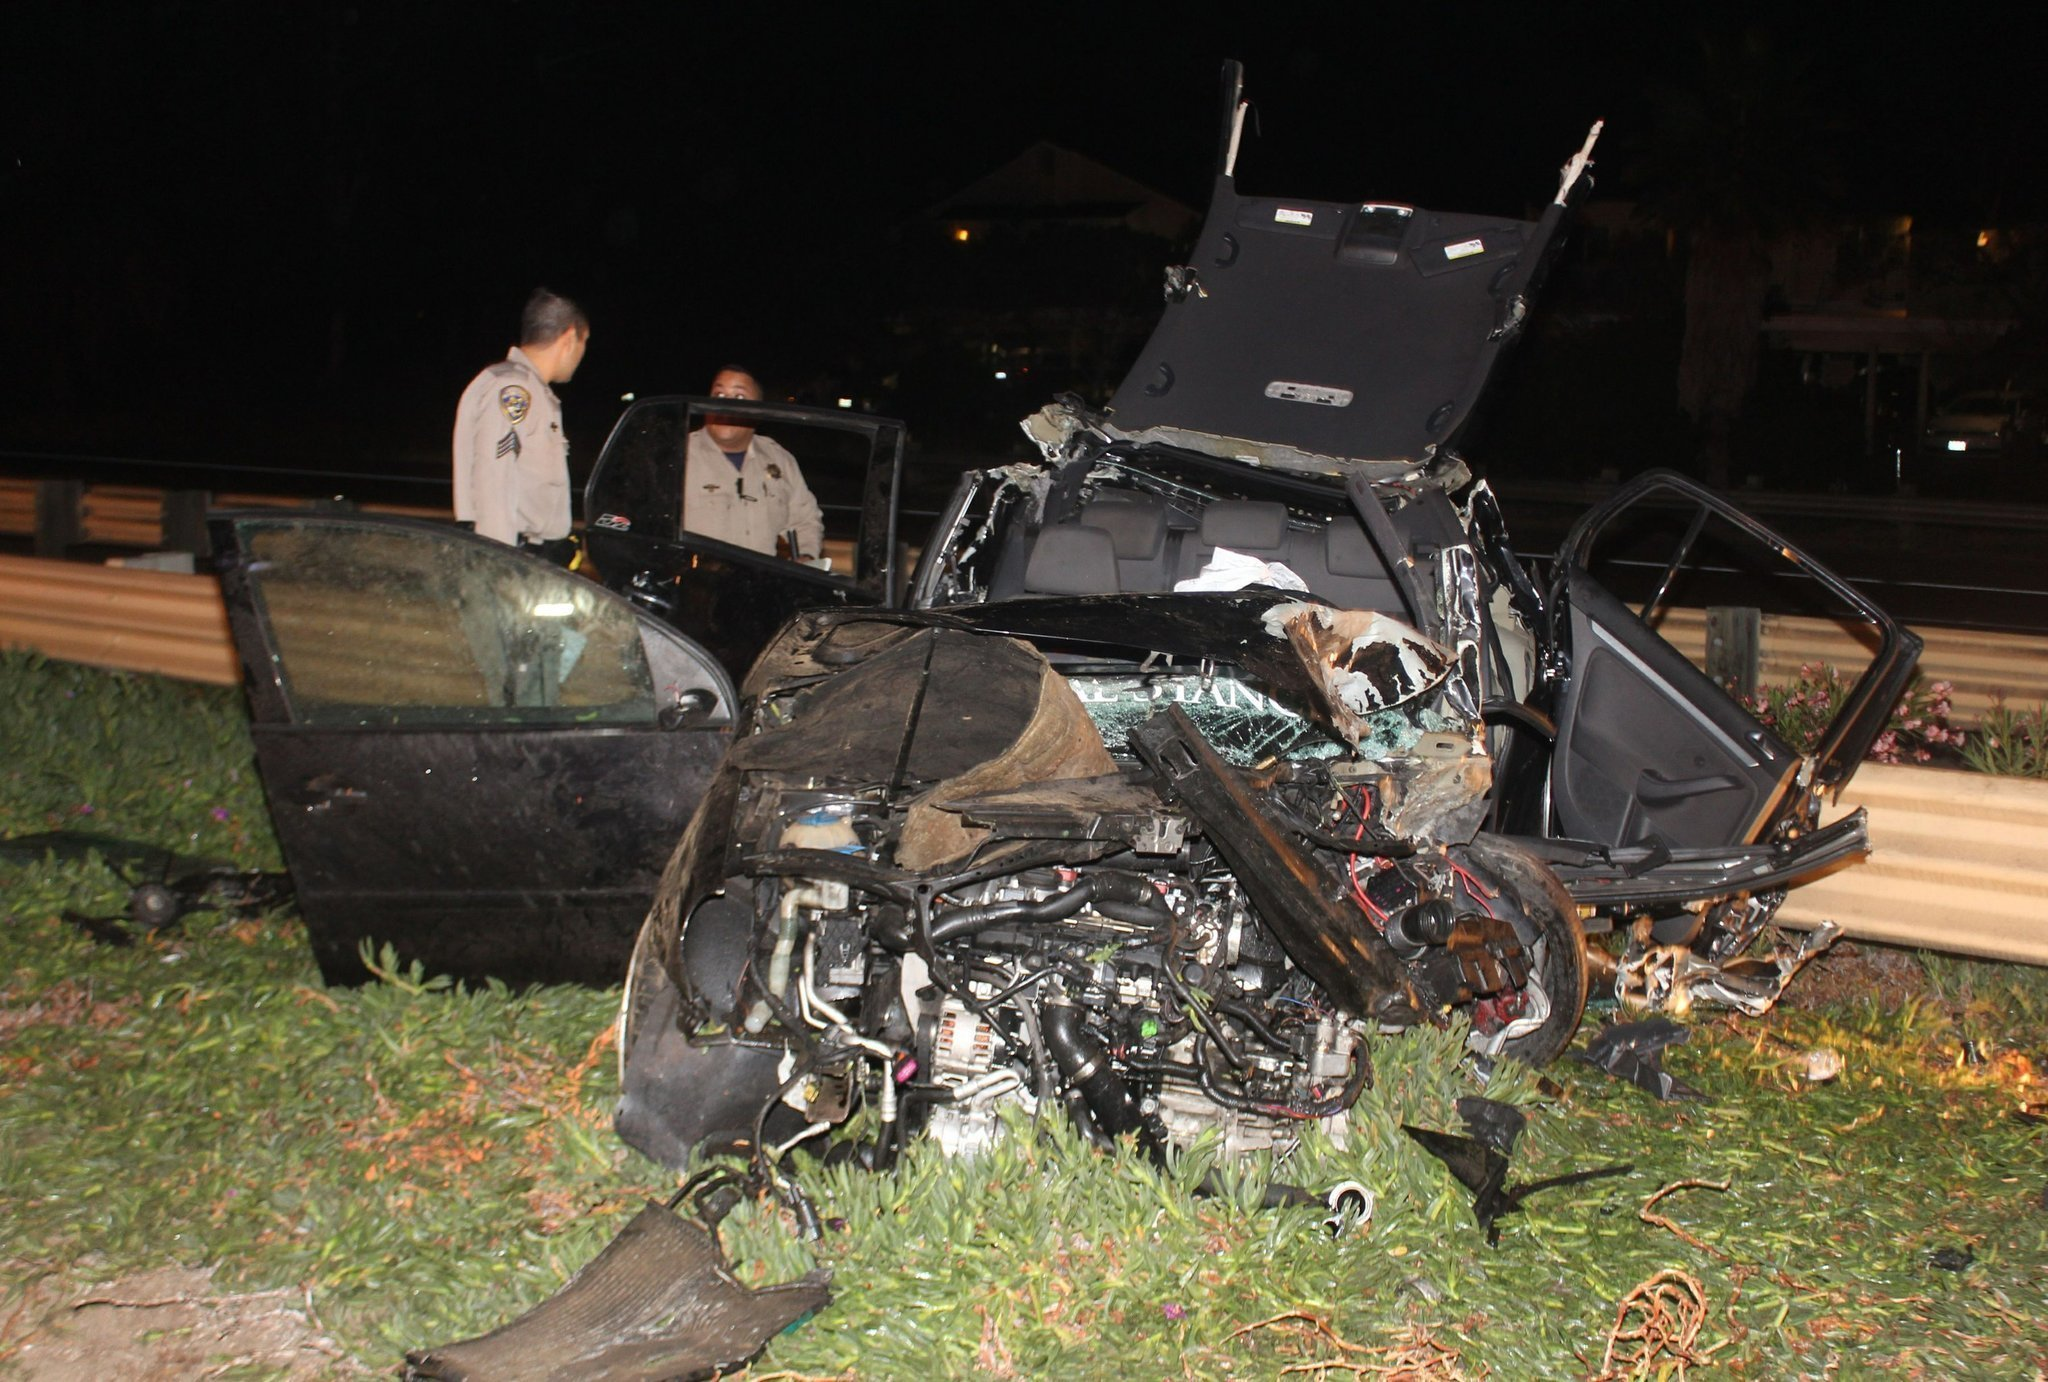 New Honda Pilot >> Fatal wrong-way crashes lead to freeway changes - The San Diego Union-Tribune